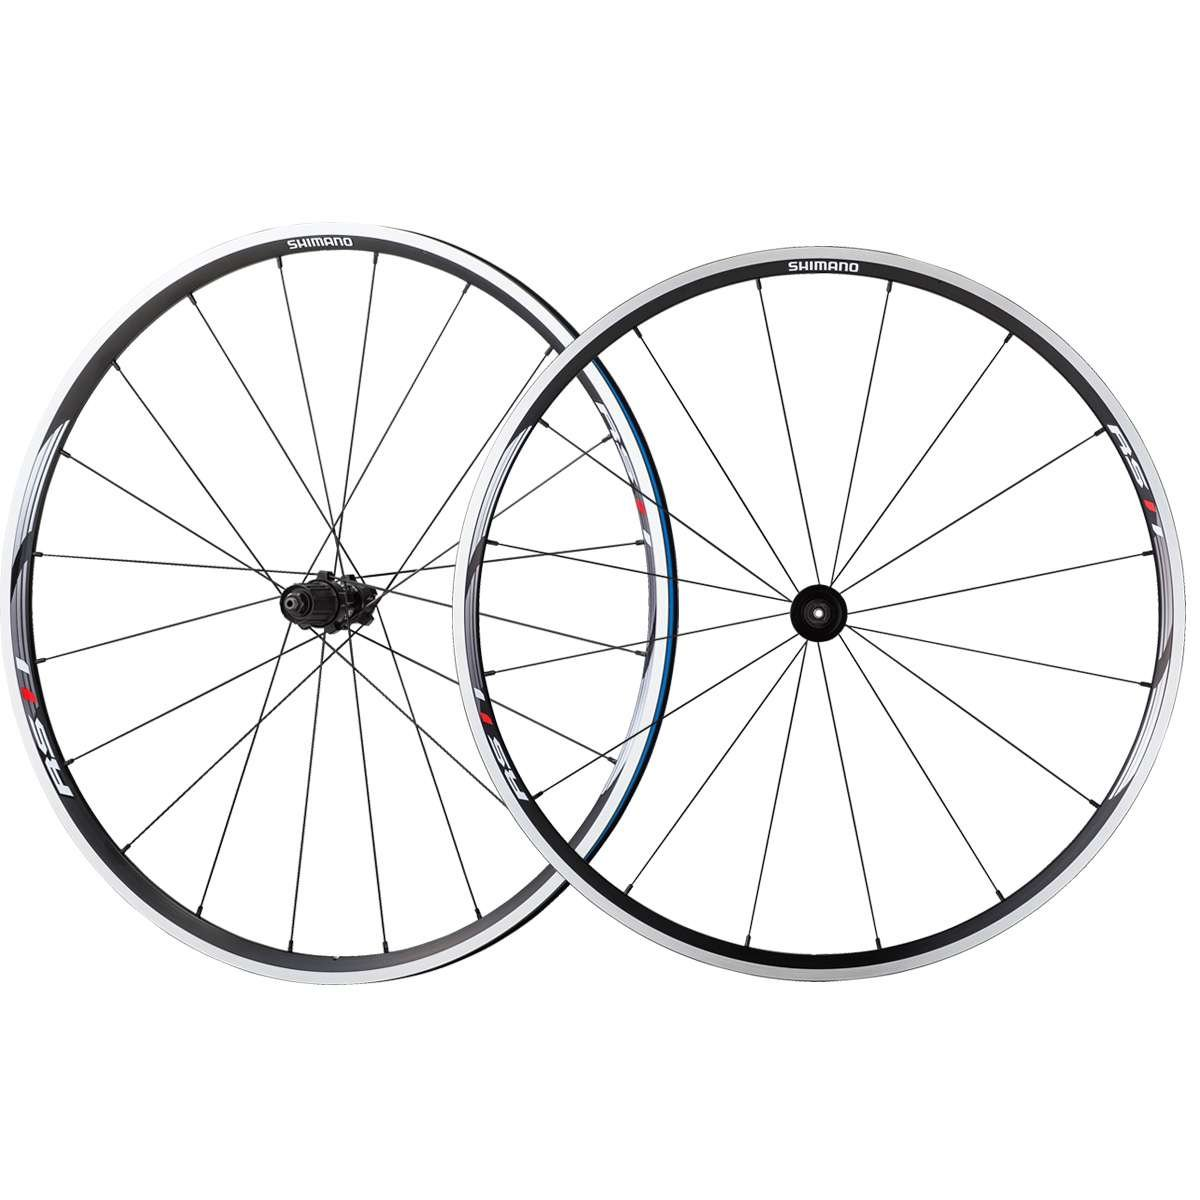 Shimano Front Road Bicycle Wheel - WH-RS11 - EWHRS11FCBM